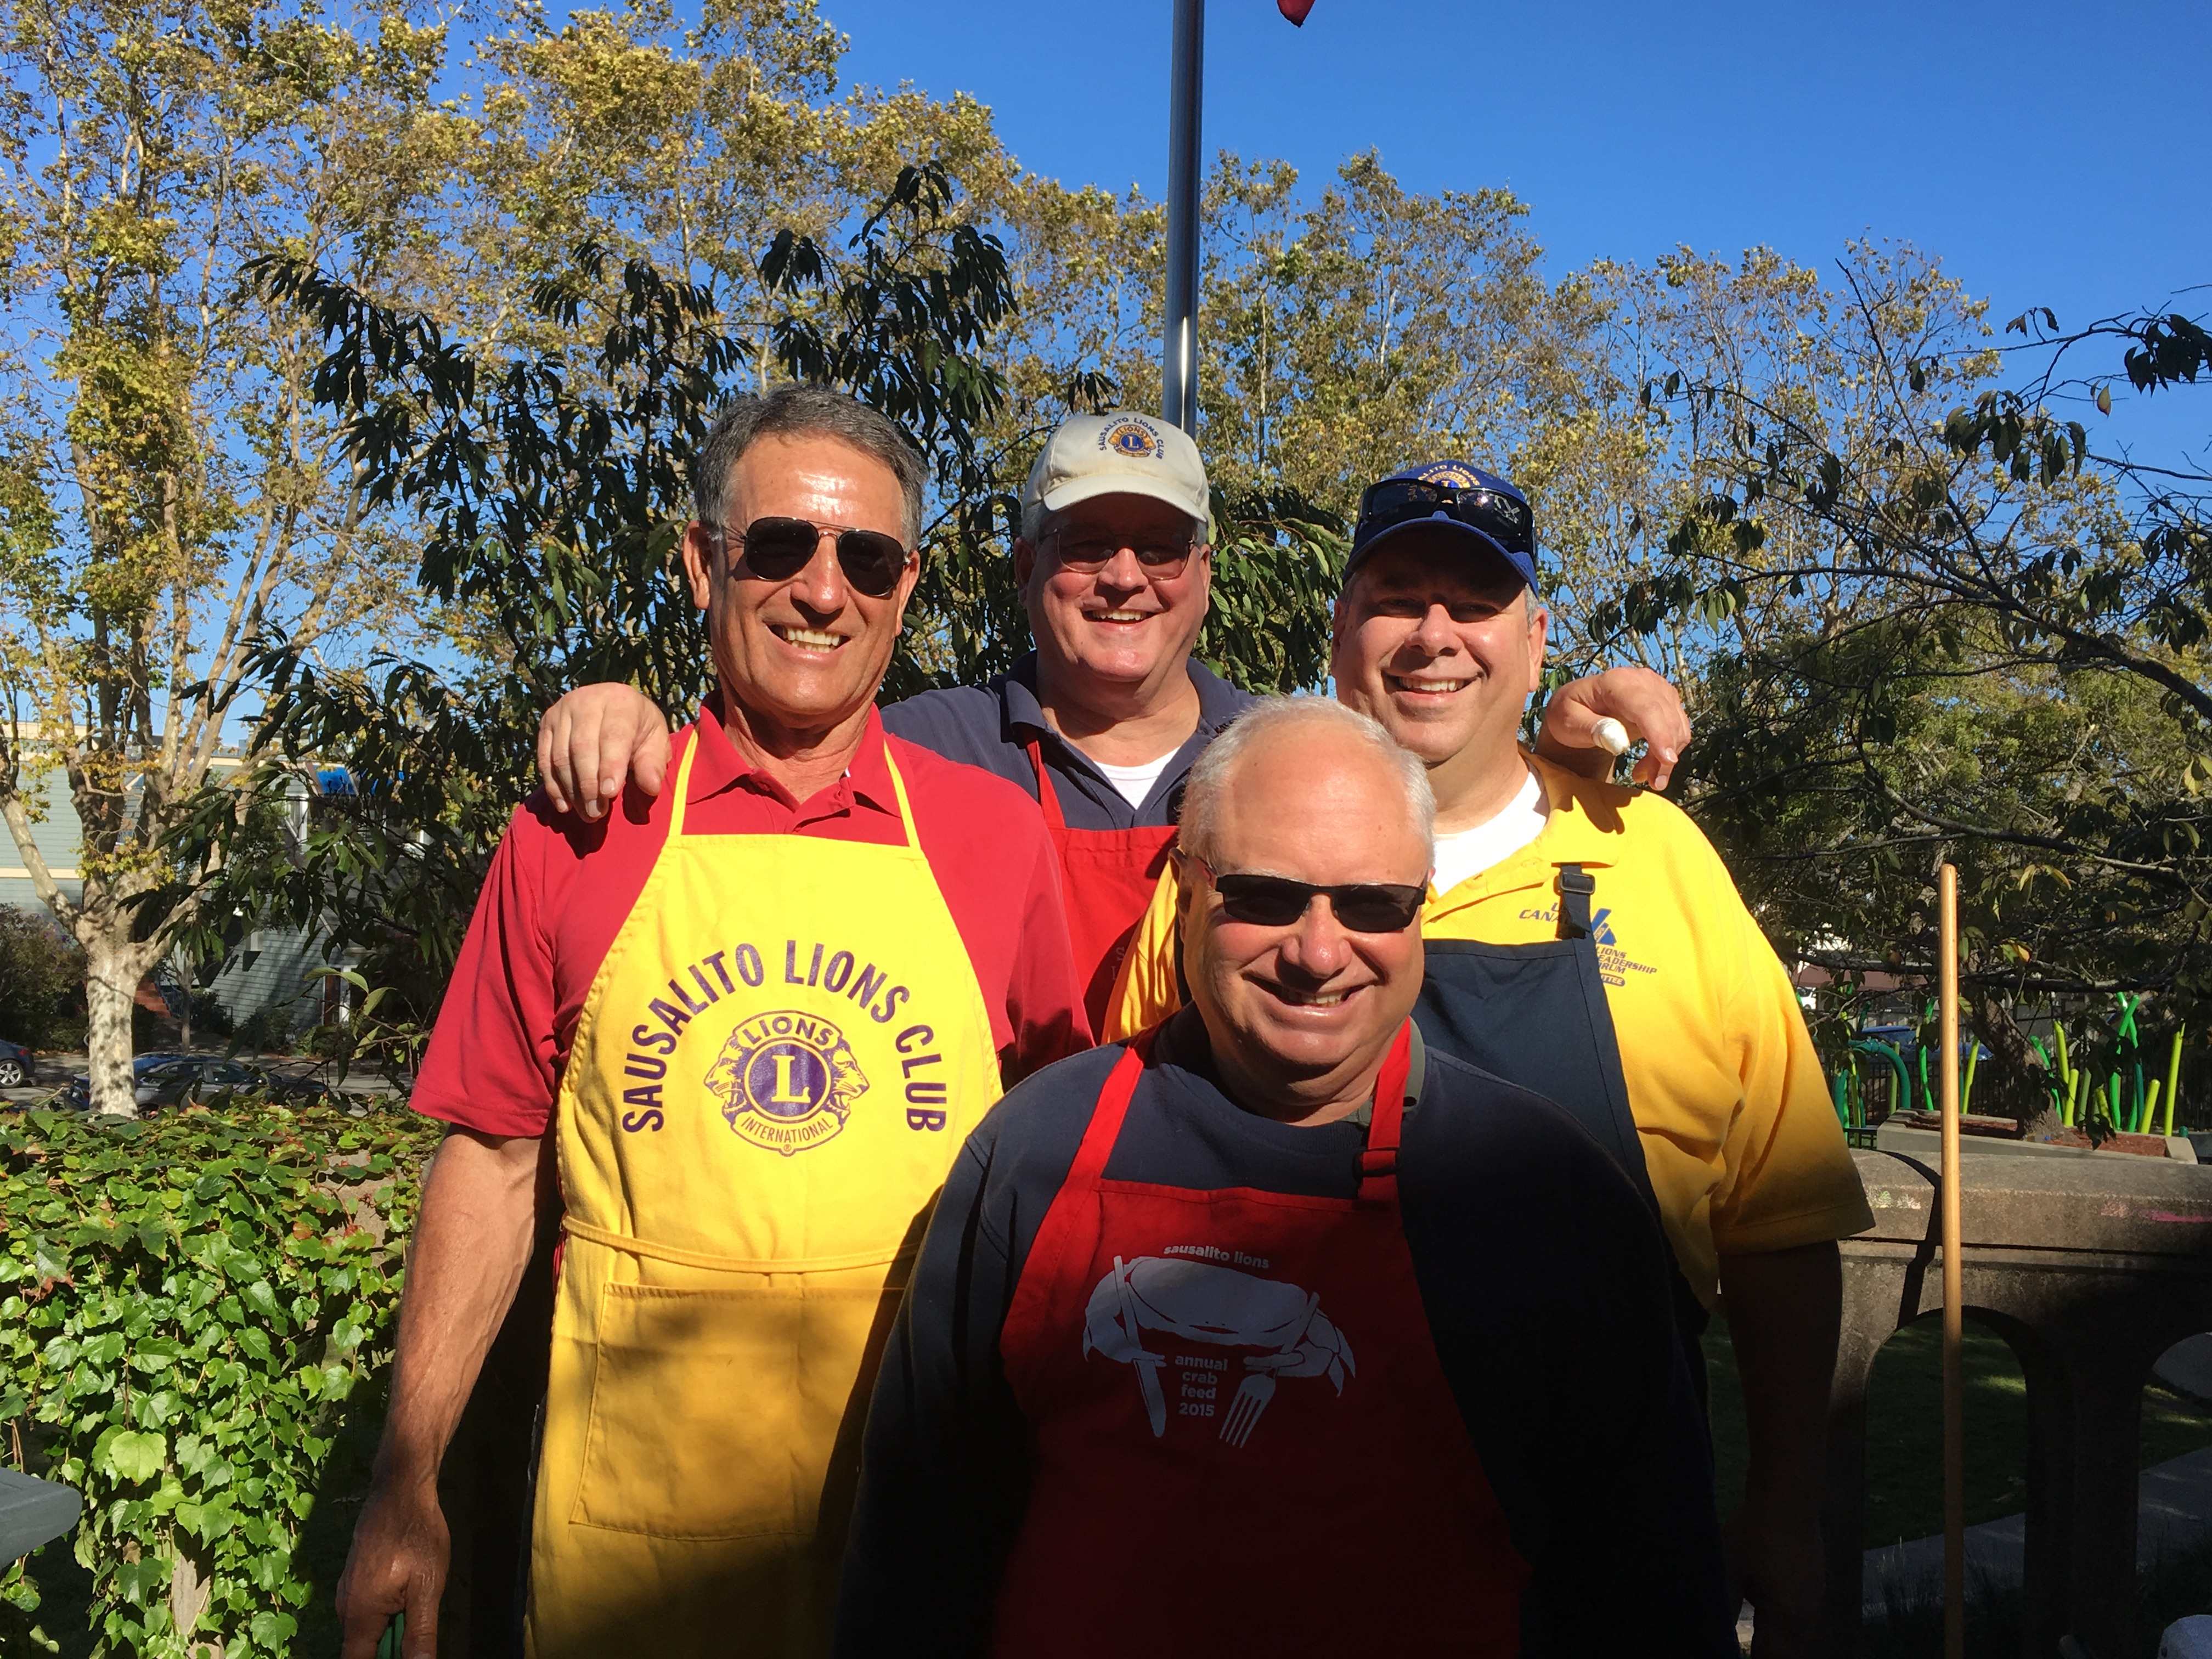 Annual Lions Club BBQ picture